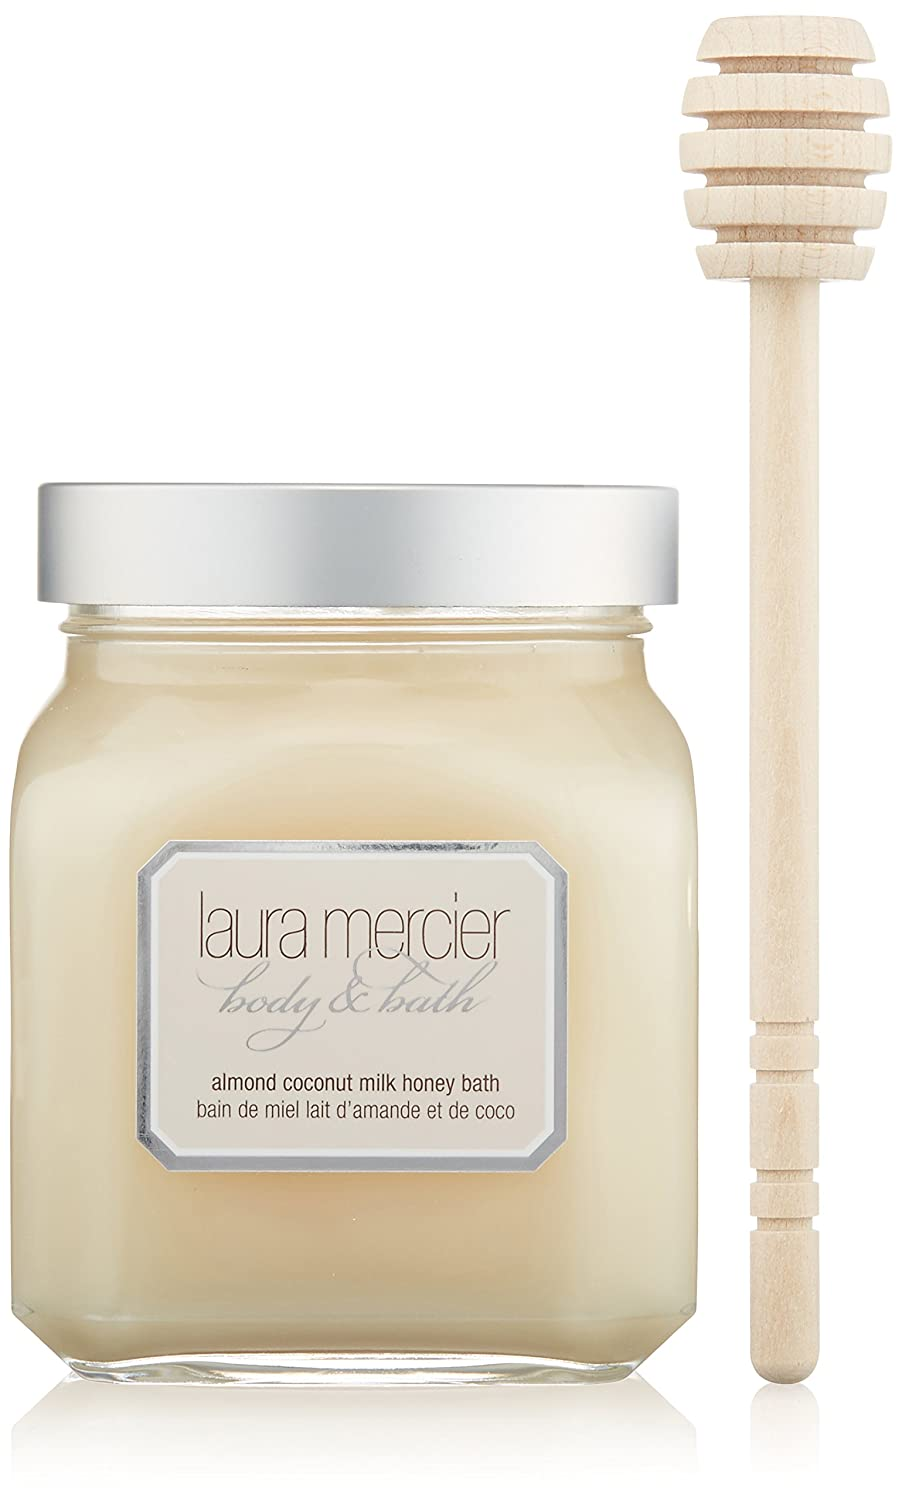 Laura Mercier Almond Coconut Milk Honey Bath, 12 Ounce Mainspring America Inc. DBA Direct Cosmetics 0736150041777